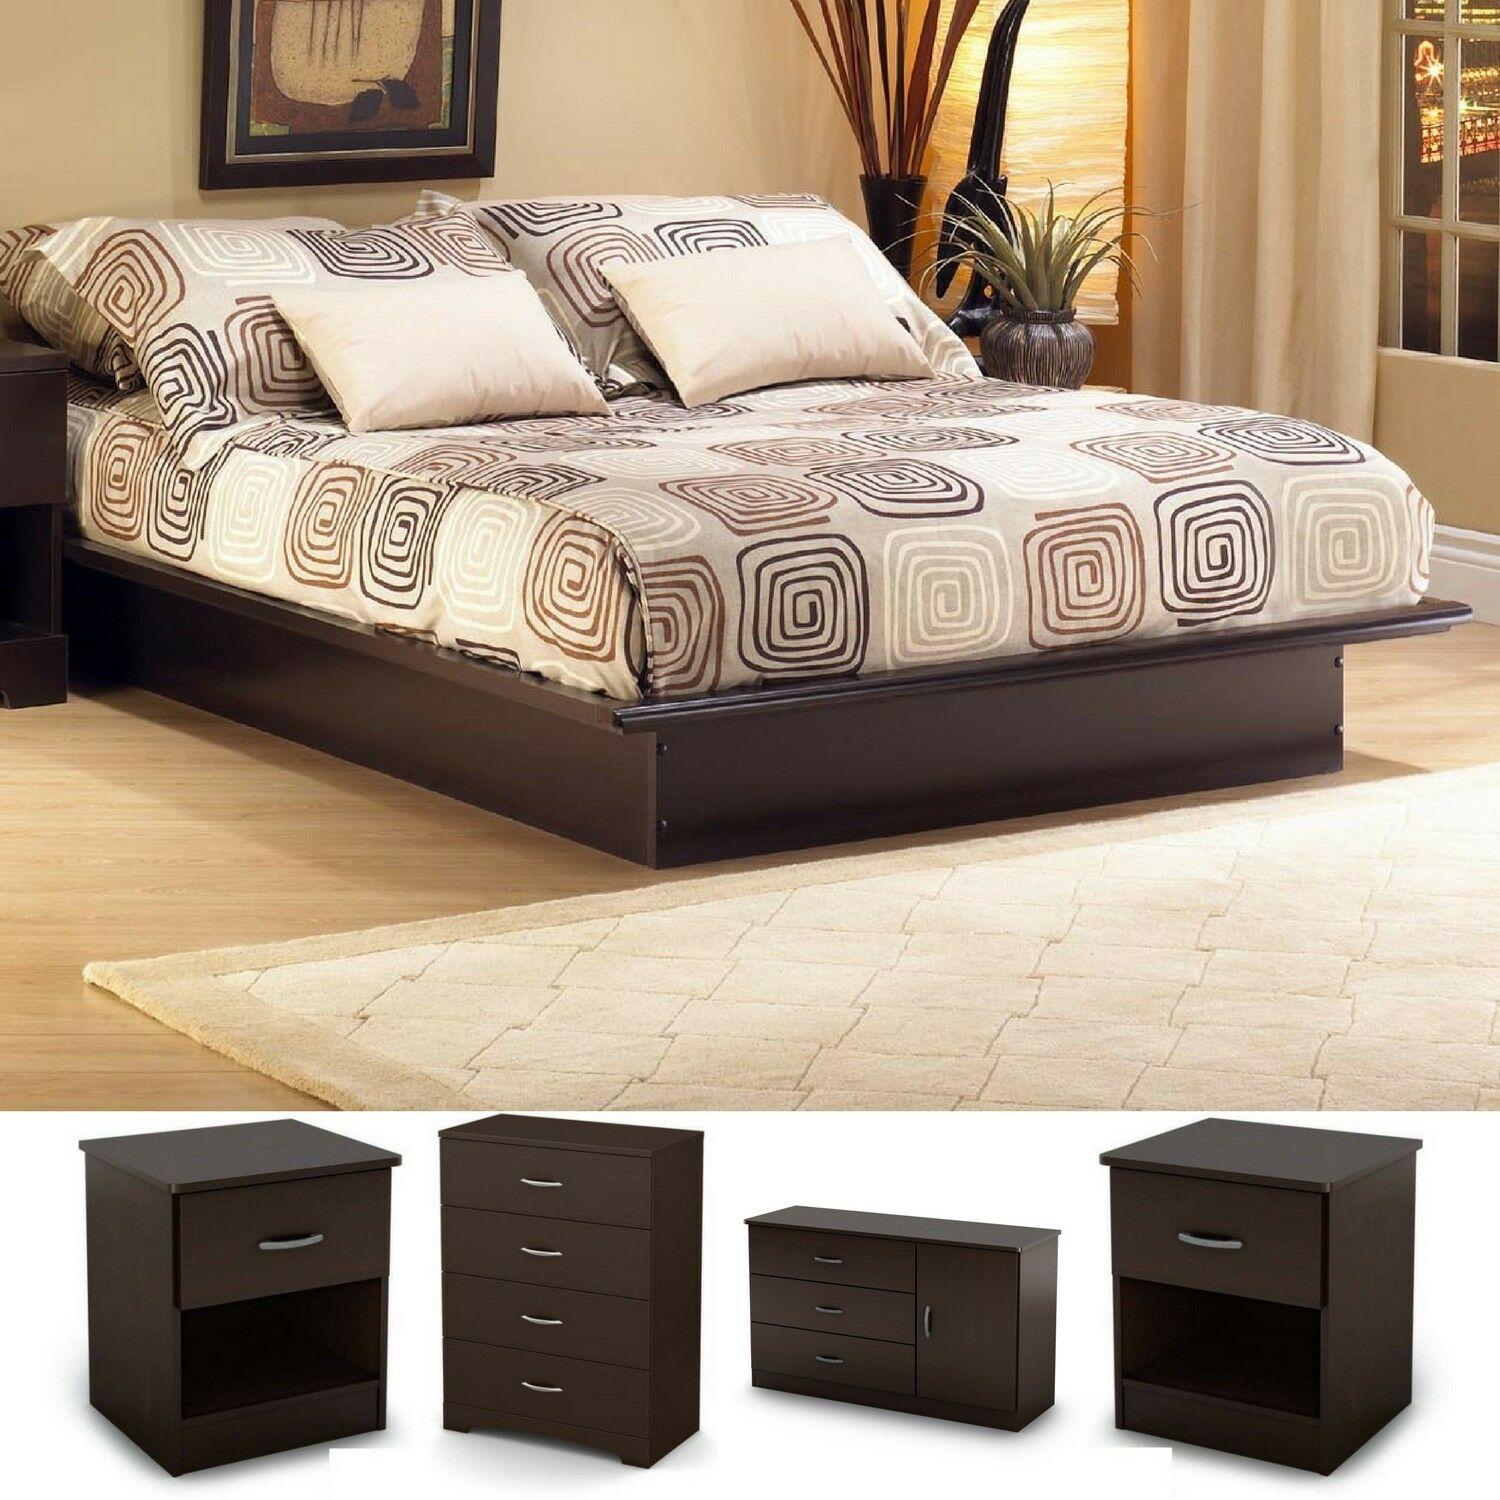 5 Pieces Bedroom Set Queen Size Modern Furniture Platform Bed Chest Dresser  Wood